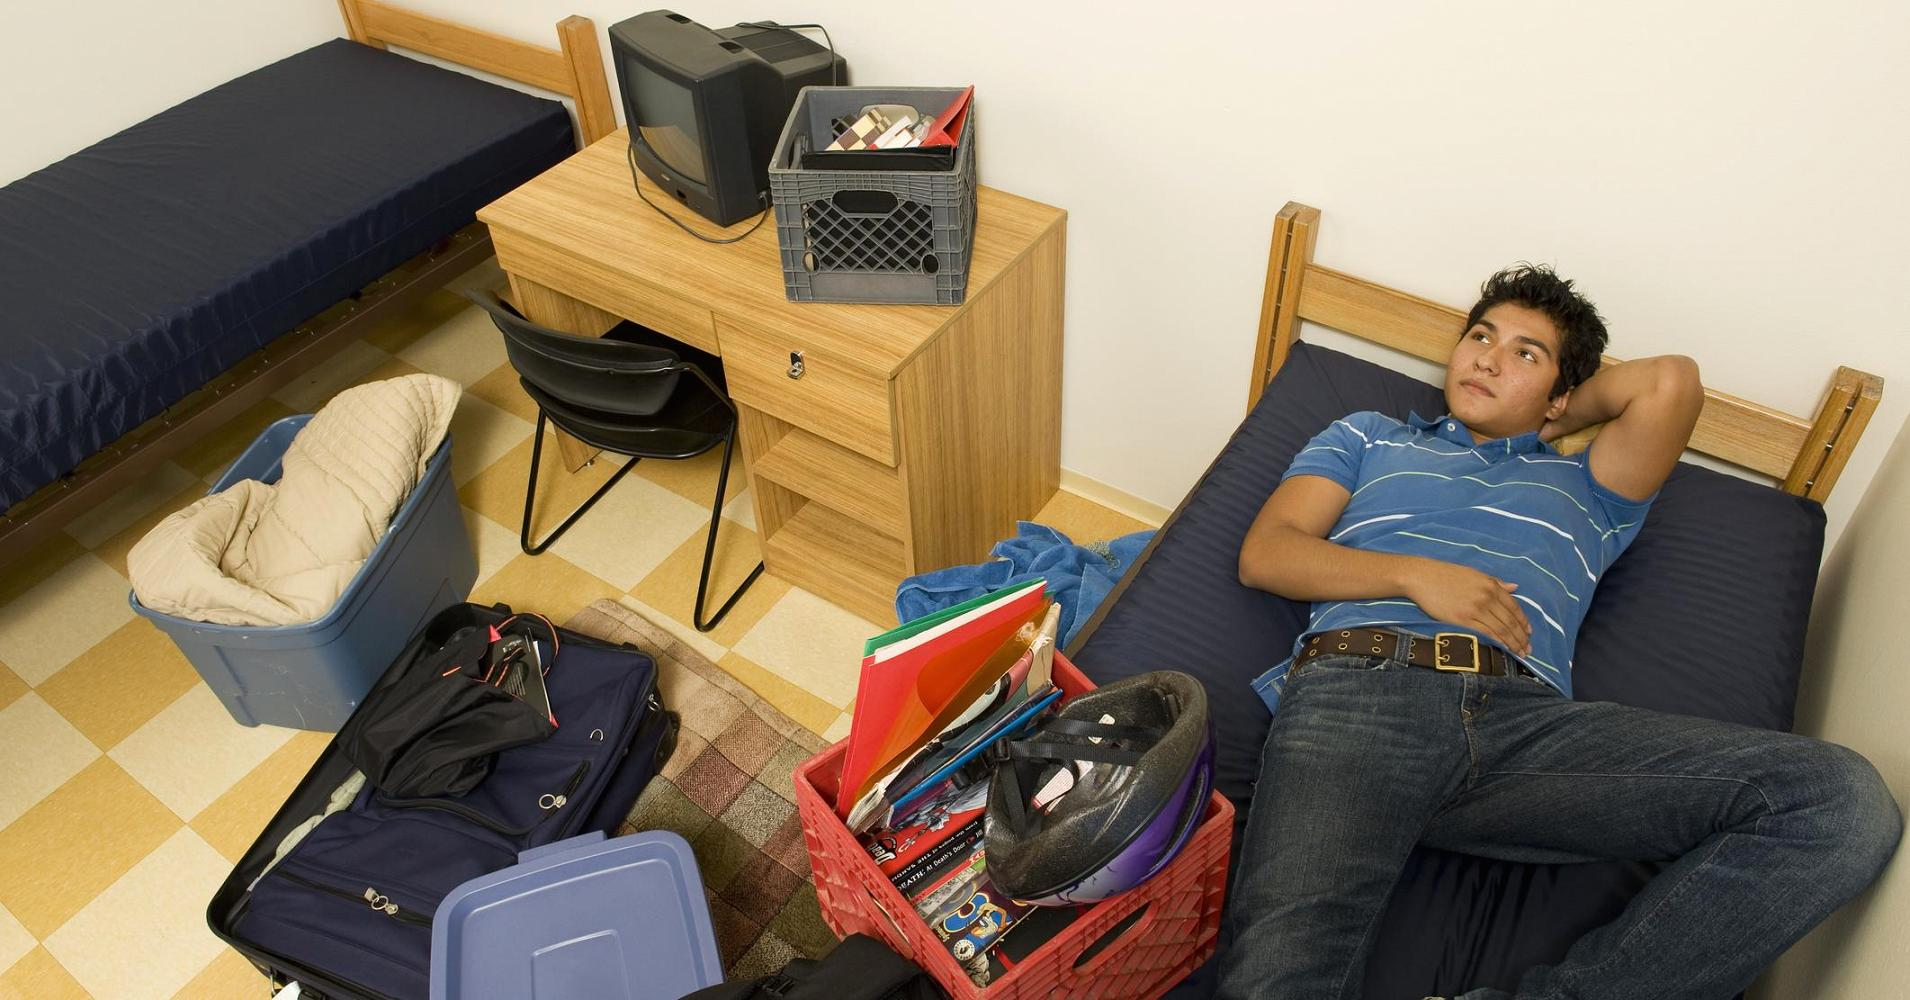 5 things you absolutely shouldn't bring to your college dorm